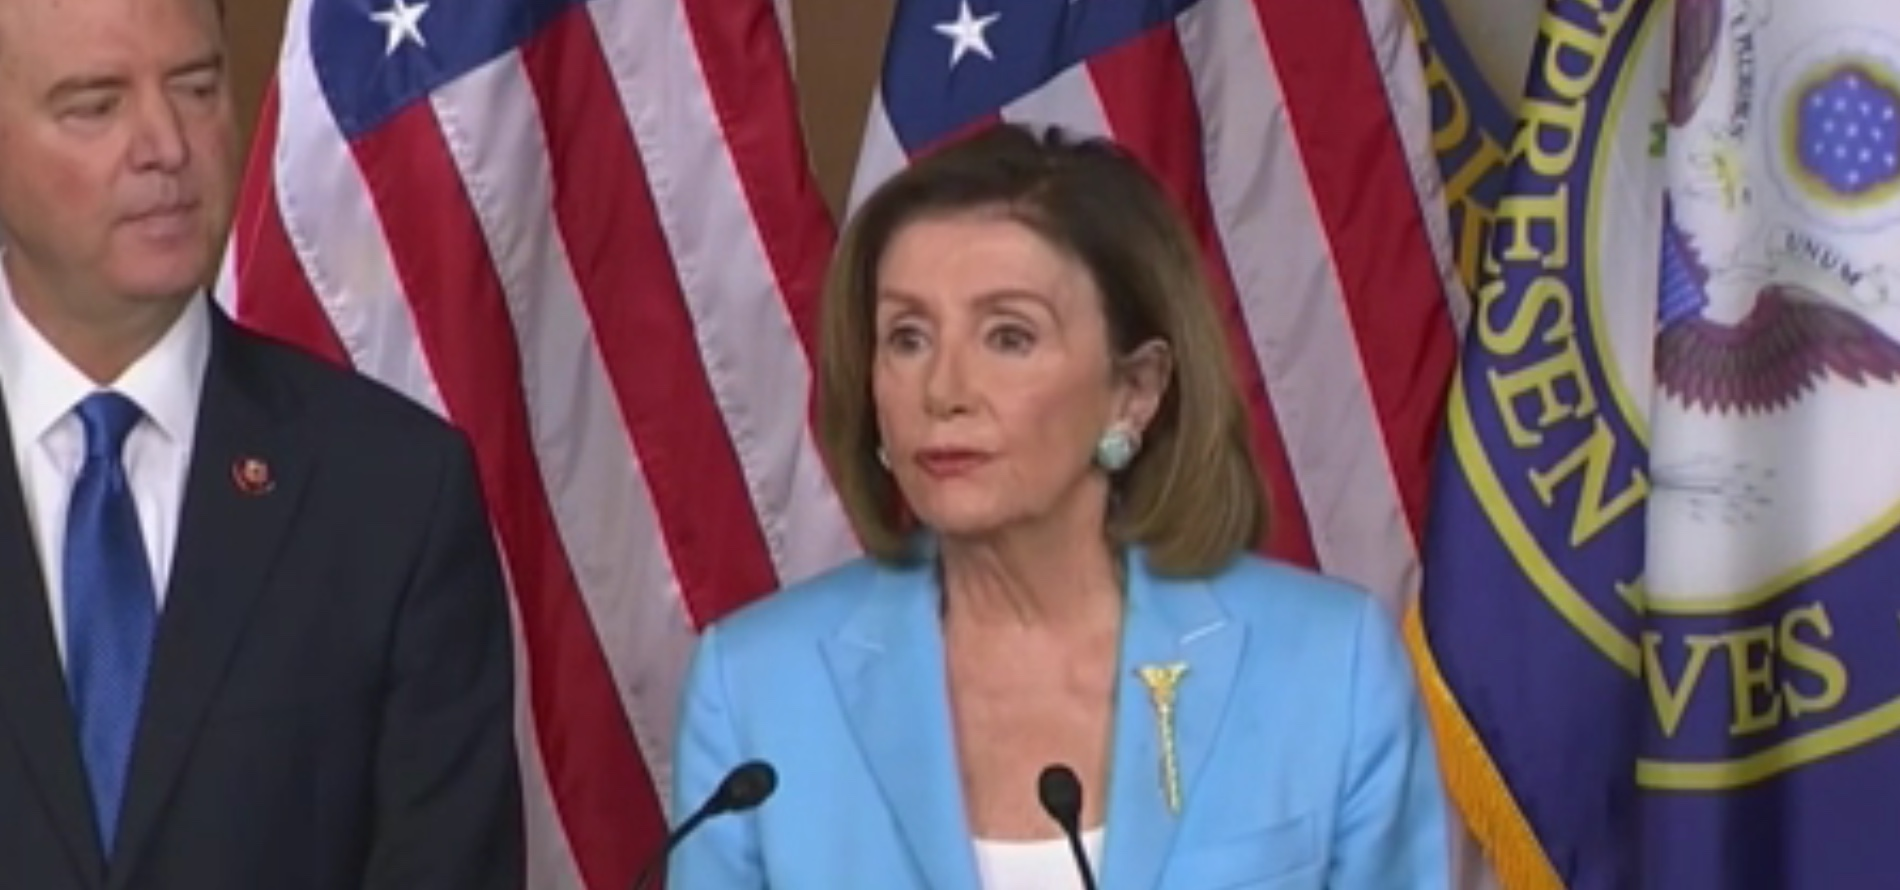 House Speaker Nancy Pelosi conducts a news conference to discuss impeachment, Oct. 2, 2019. CSPAN screenshot